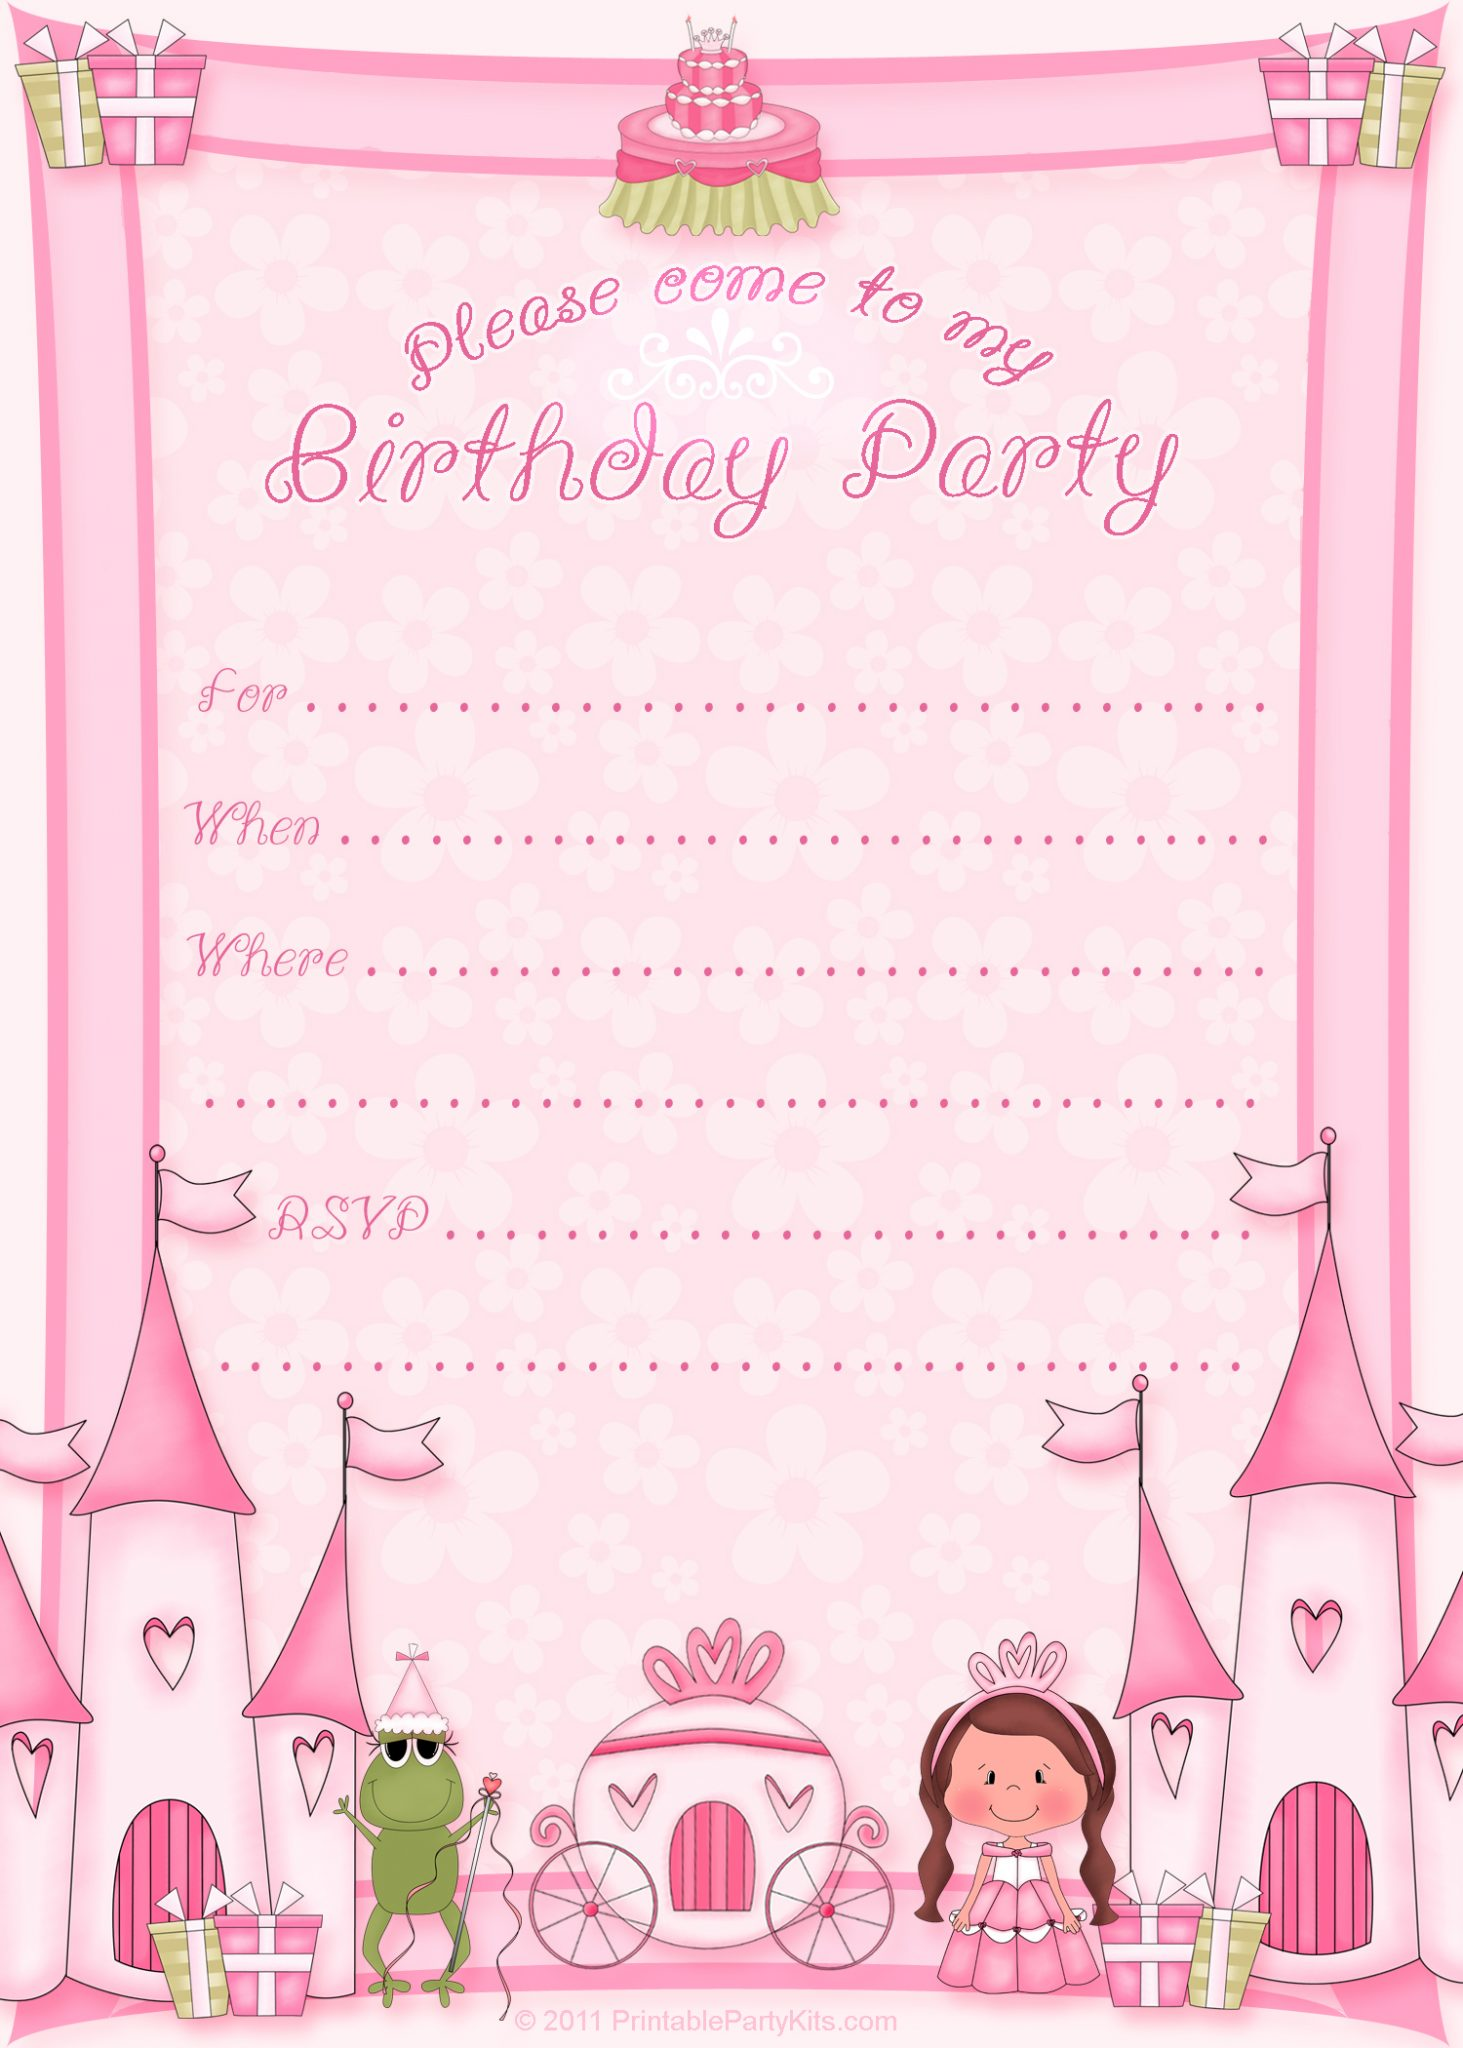 Free Birthday Invitation Templates You Will Love These - Birthday party invitations for kids free templates